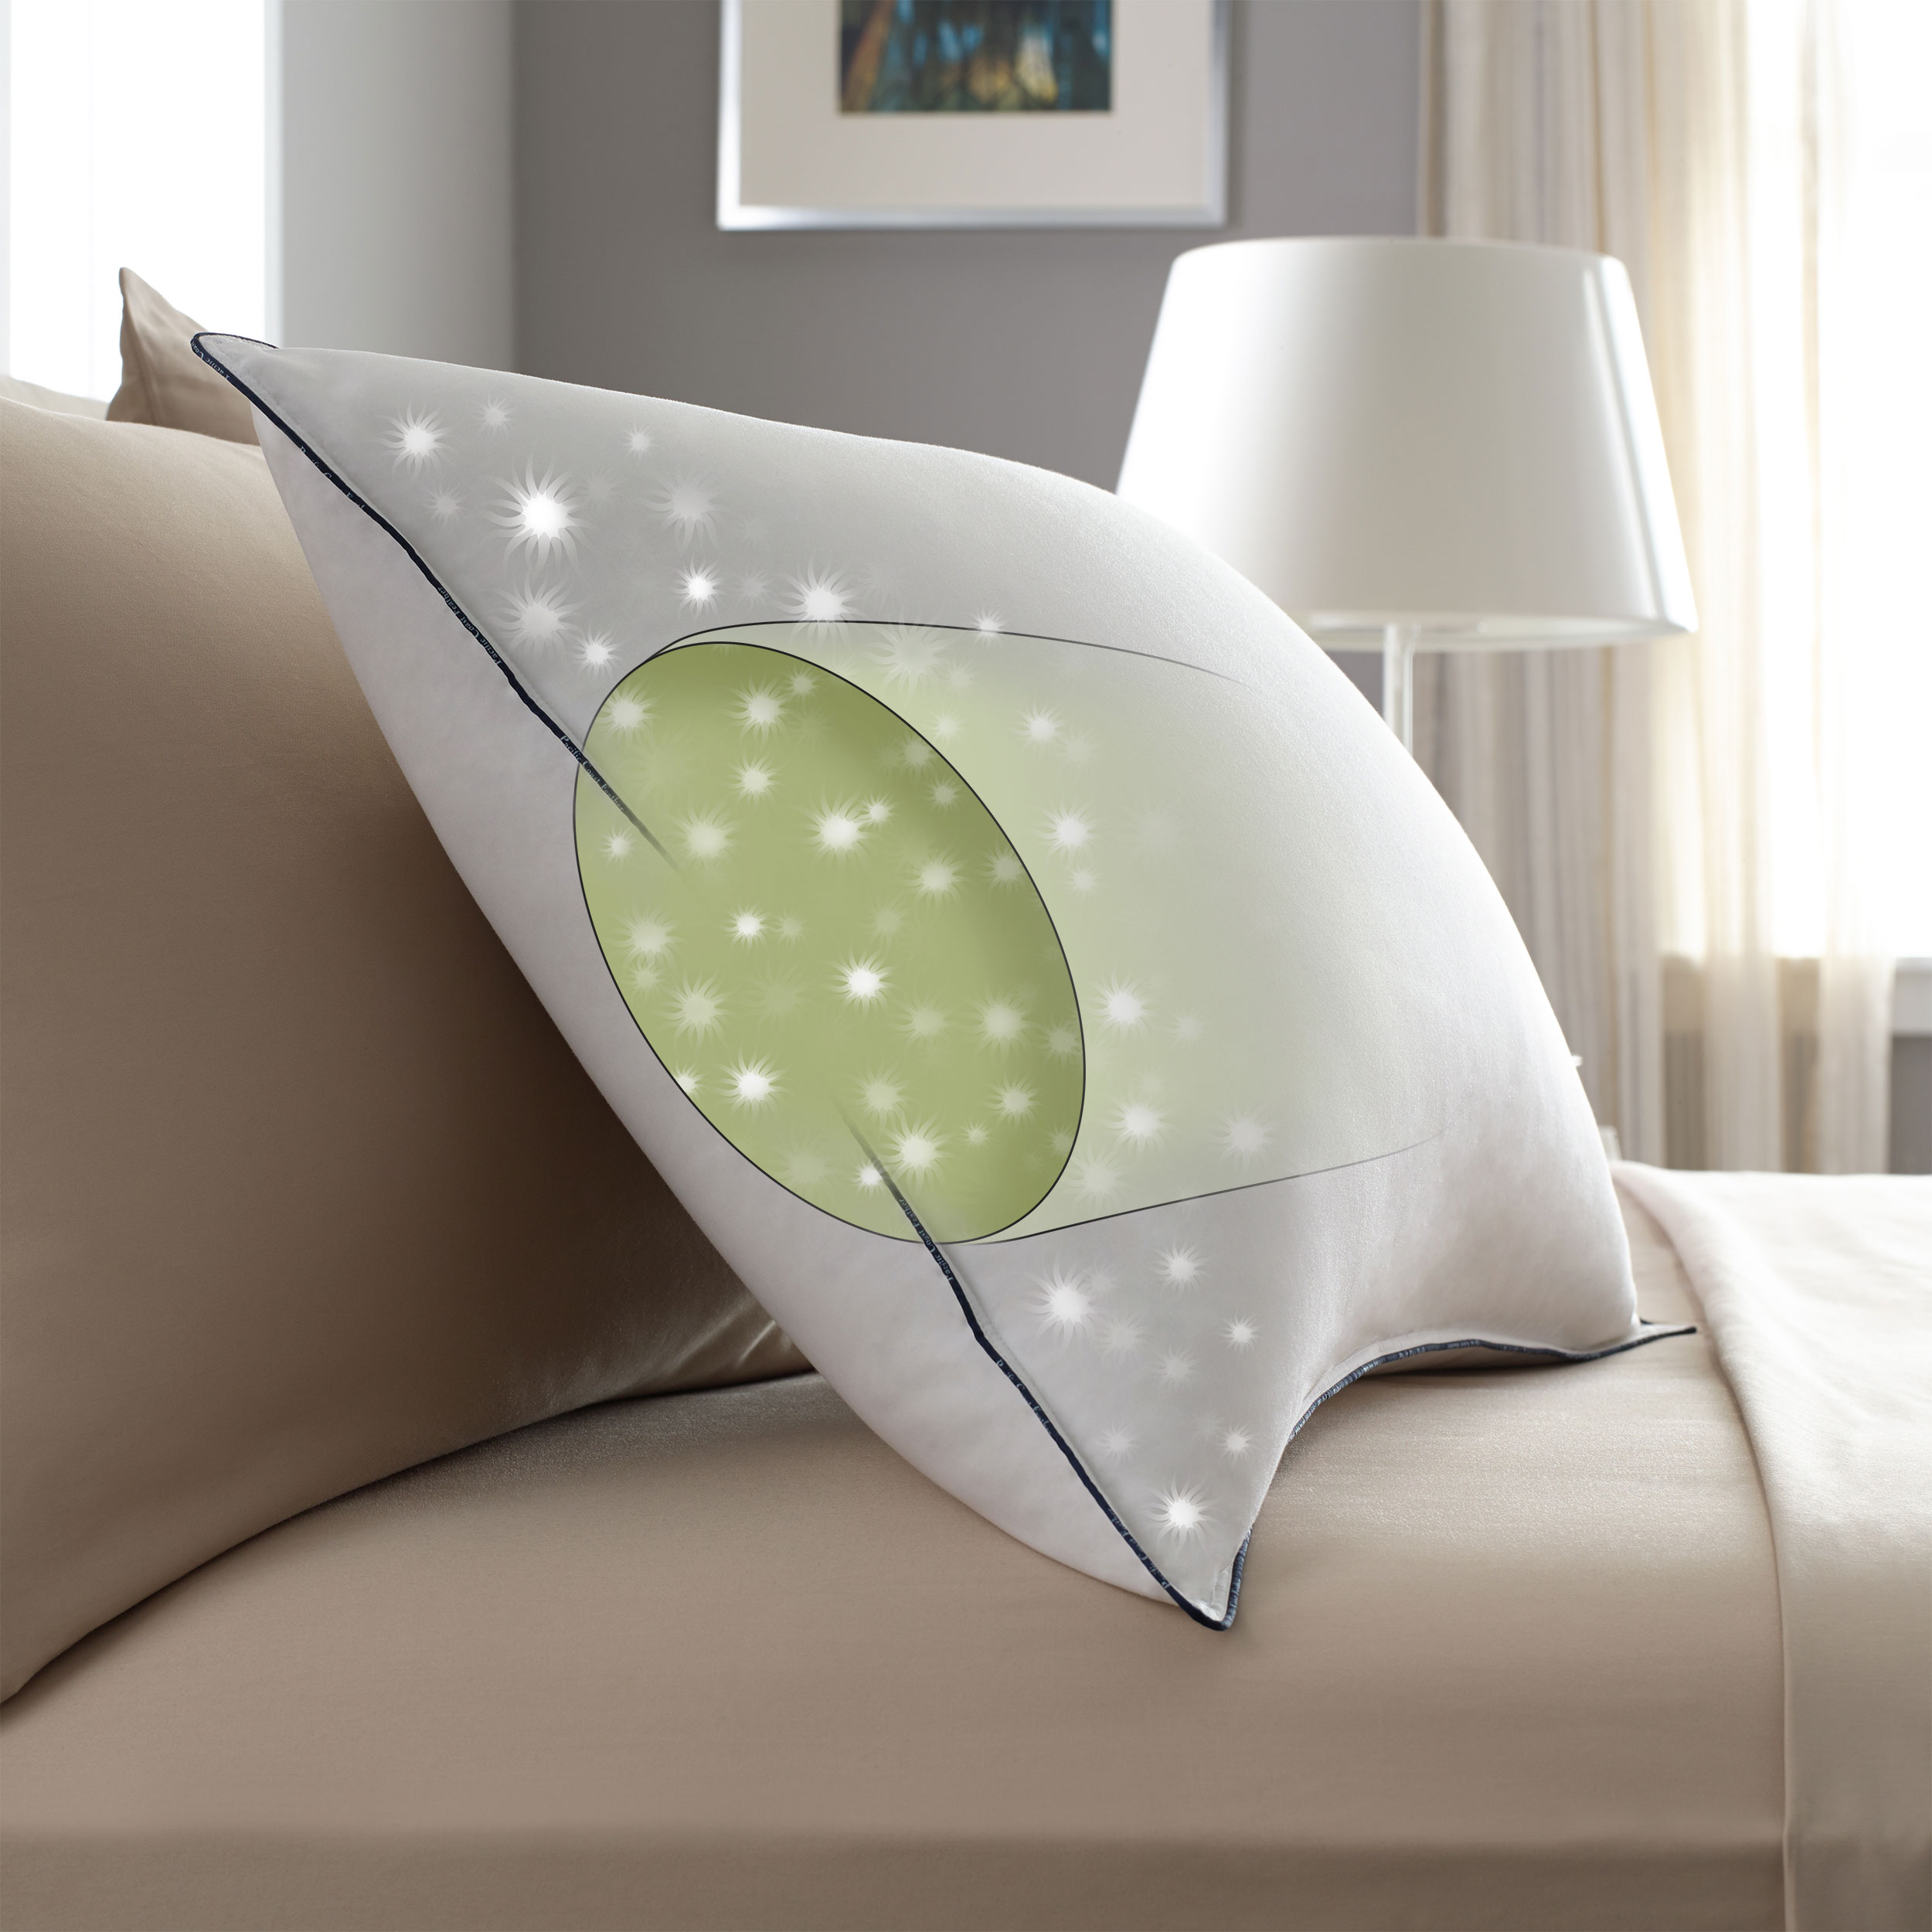 Pacific Coast® Pillow in pillow